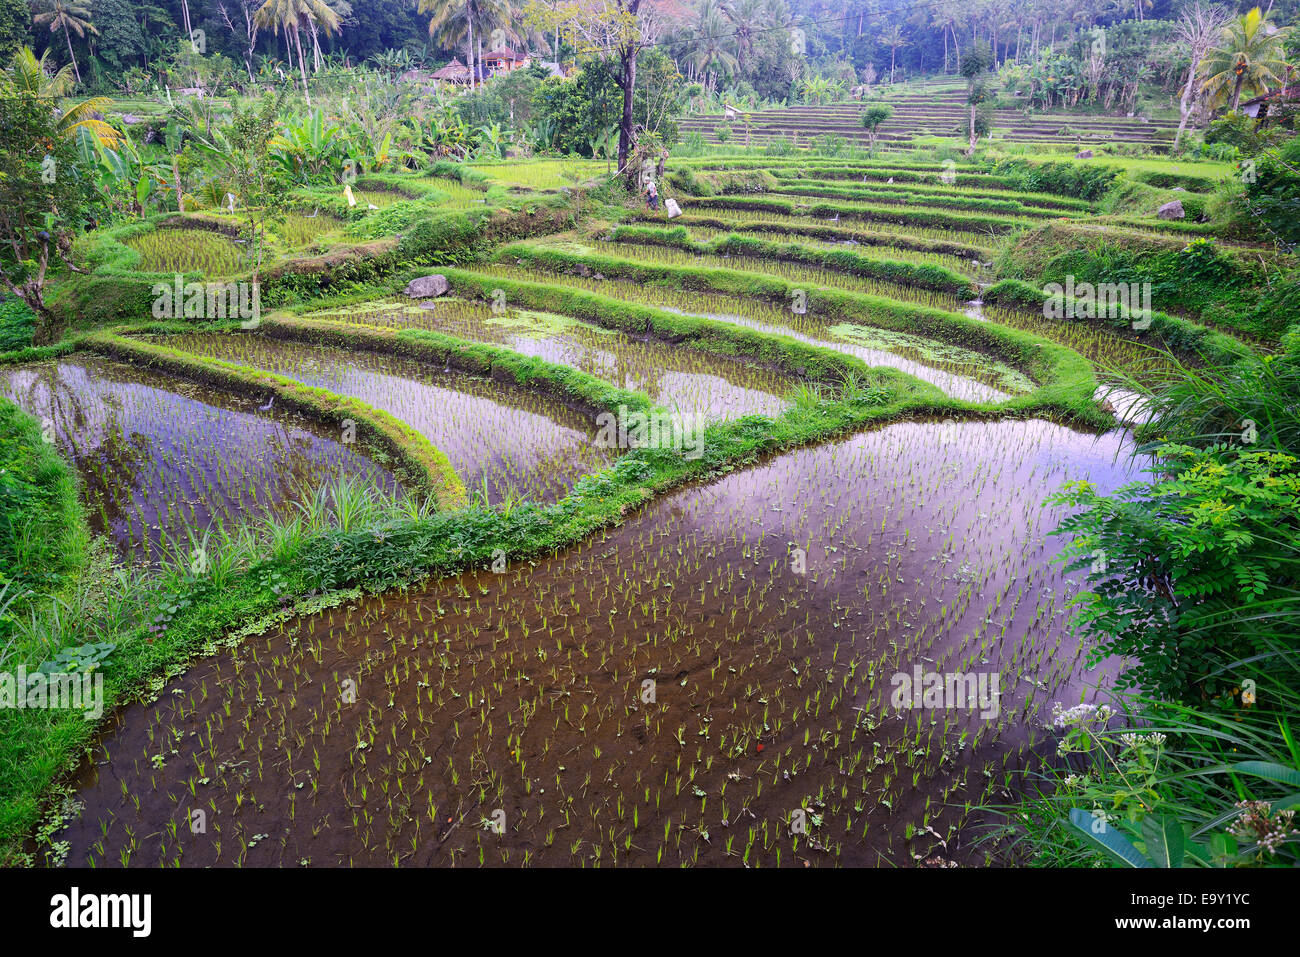 Rice paddies and rice terraces, Bali, Indonesia - Stock Image